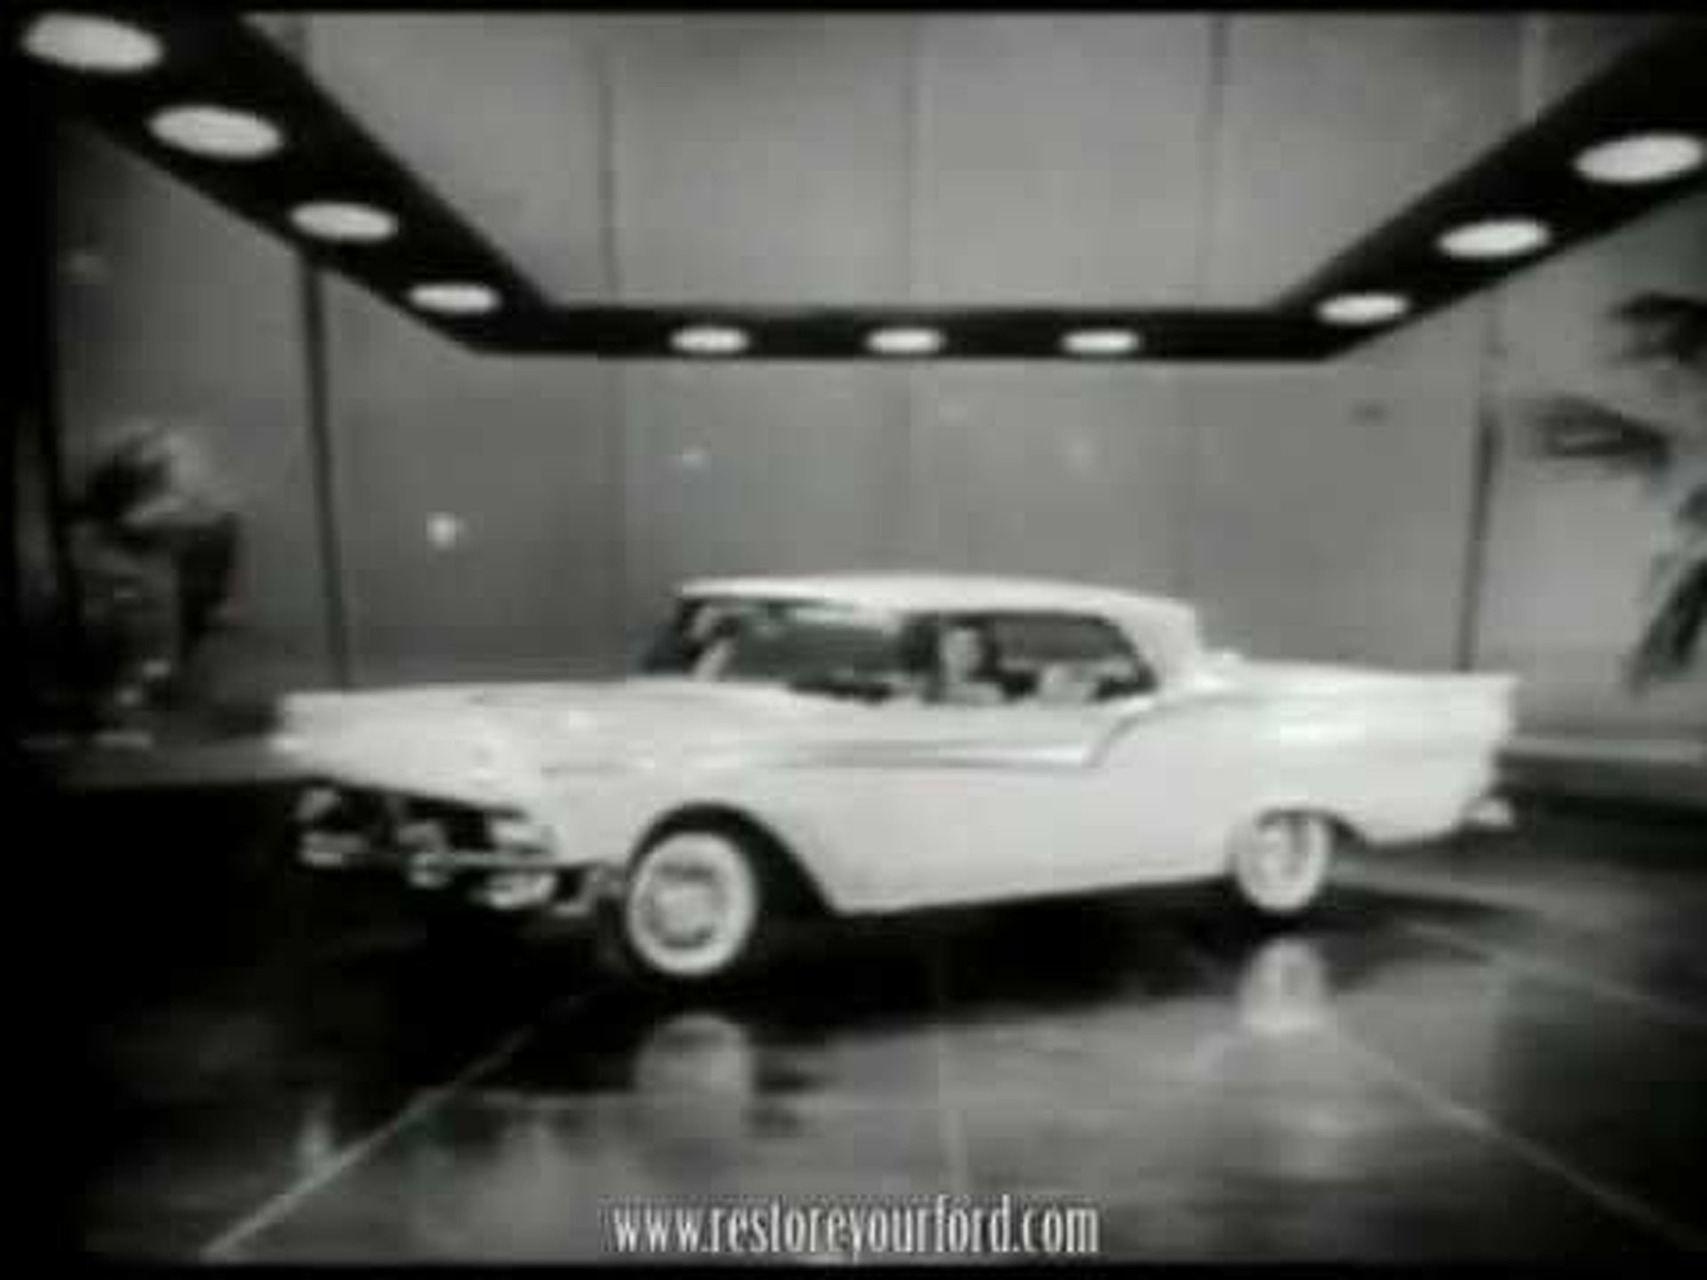 Tennessee Ernie Ford Presents the 1957 Ford Fairlane 500 Skyliner